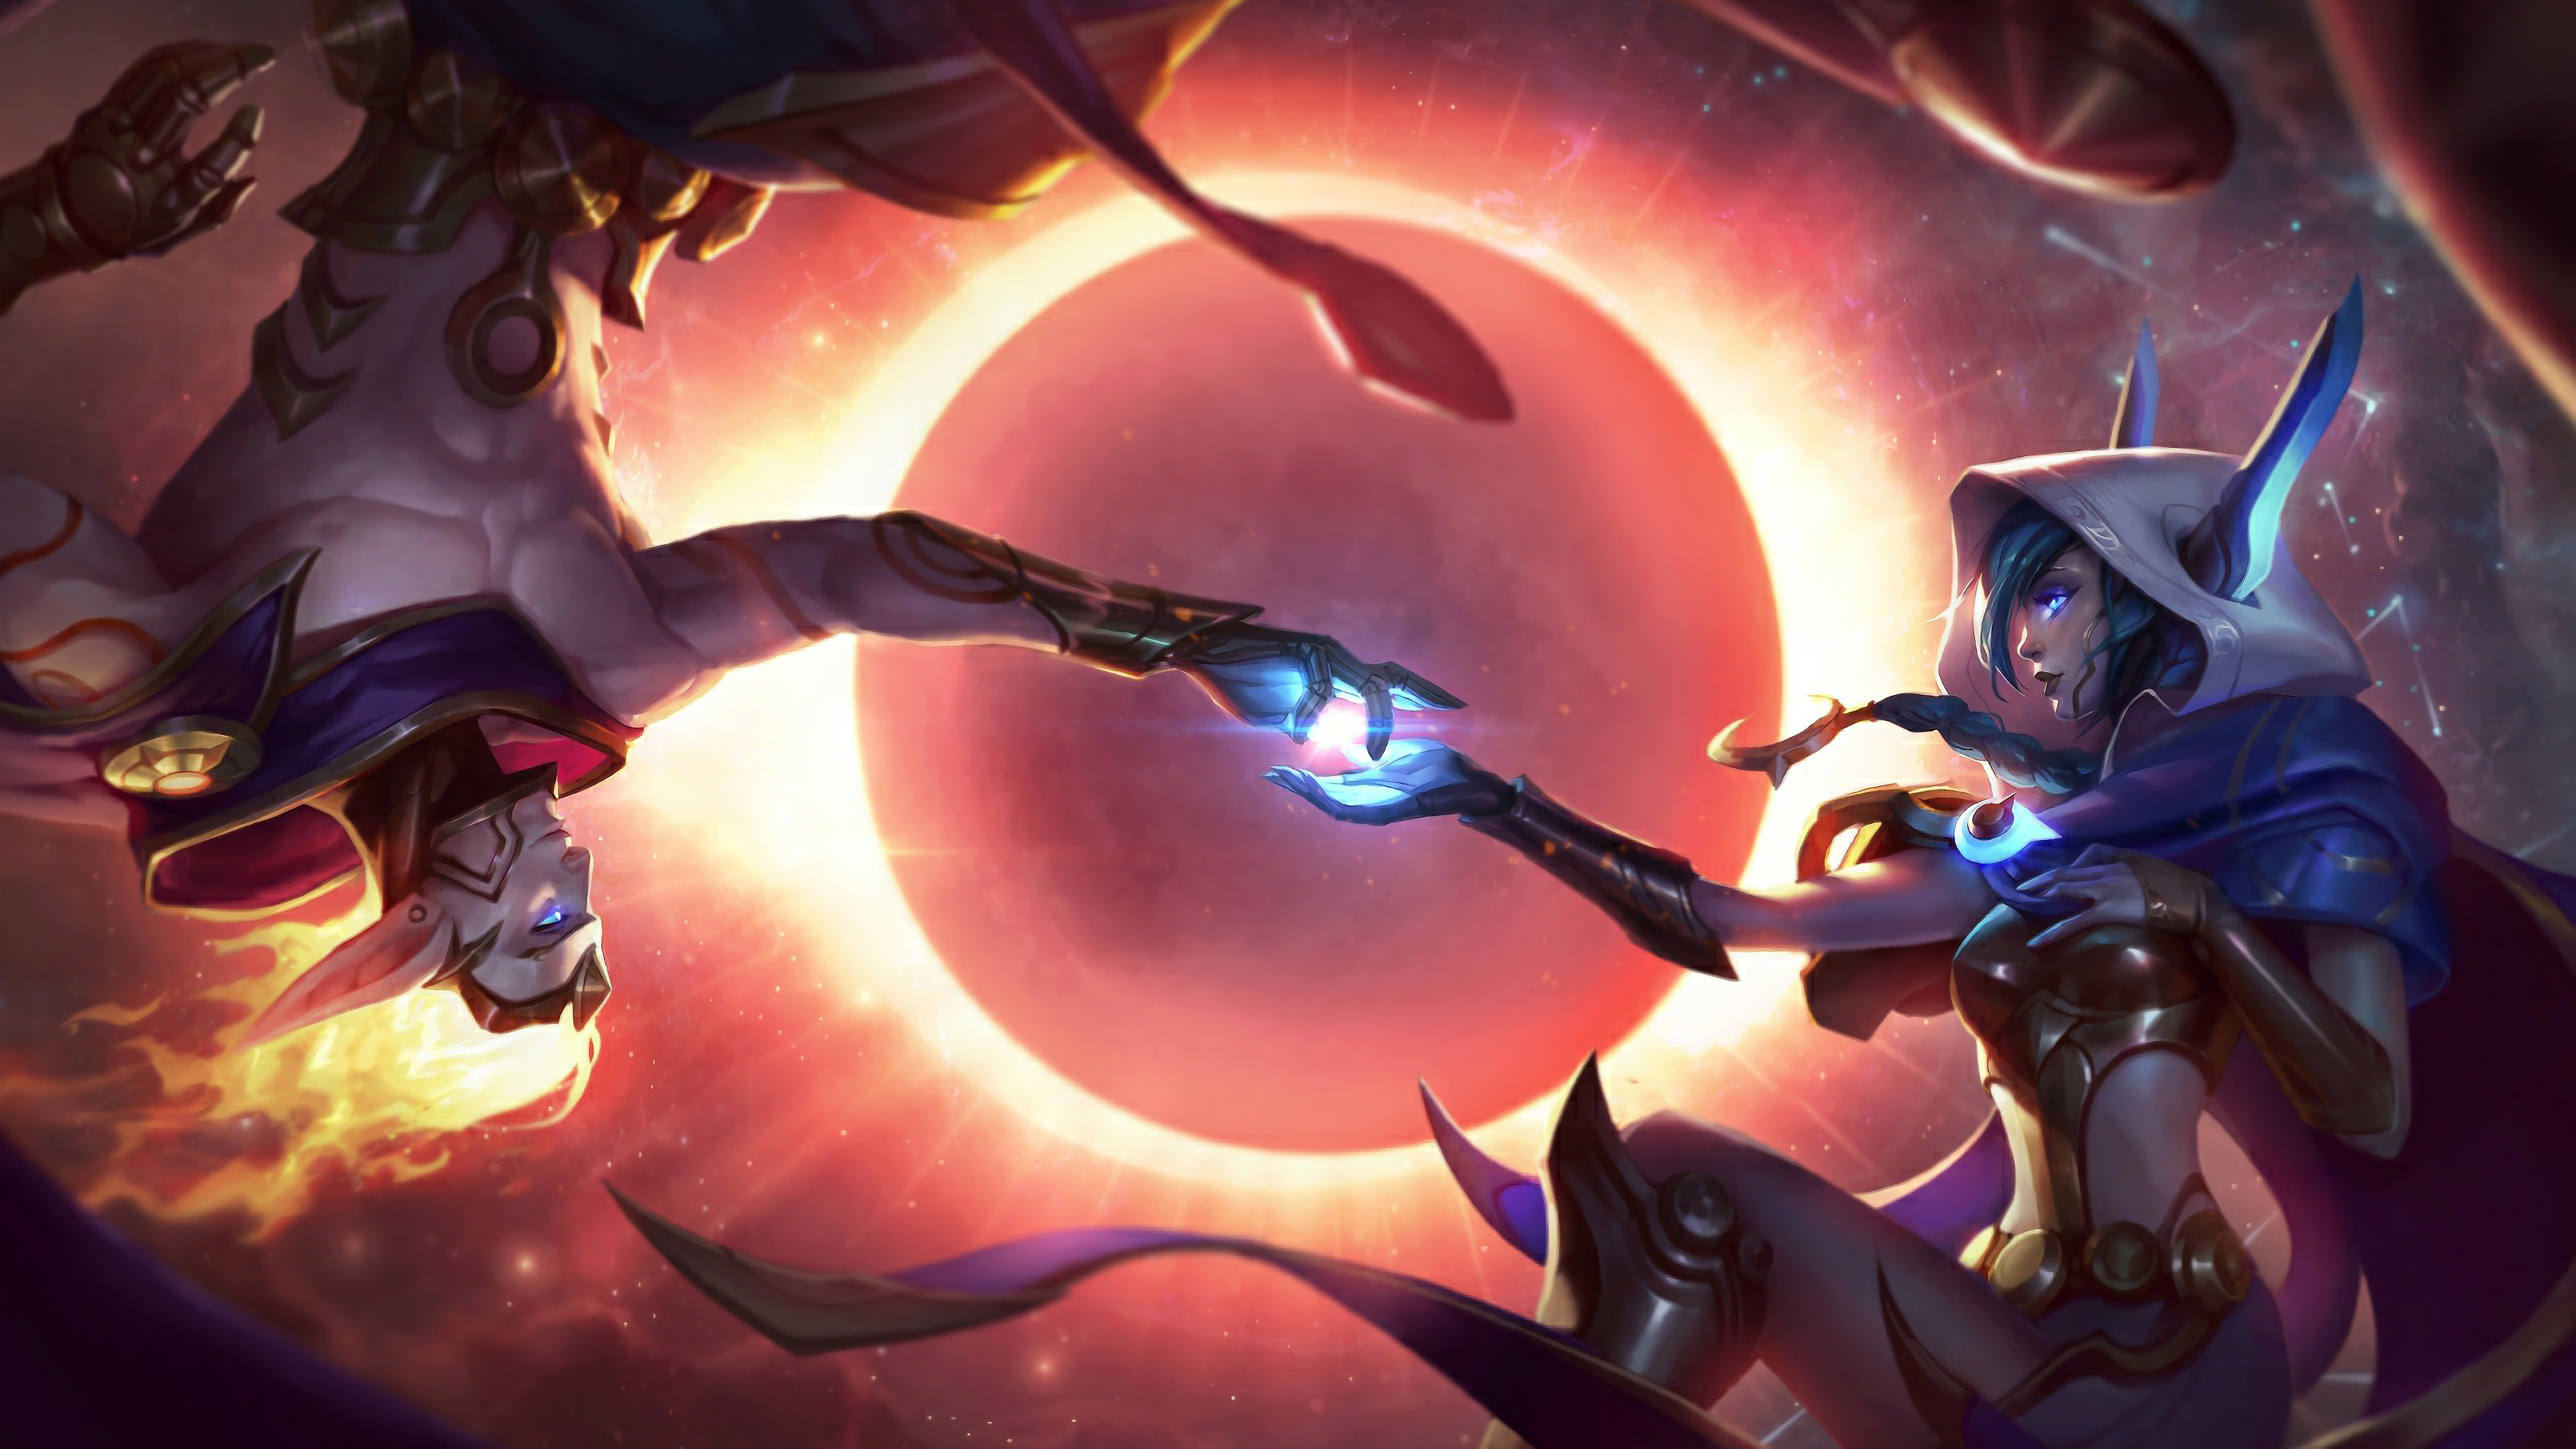 cosmic dusk xayah and cosmic dawn rakan lol splash art league of legends 1574099726 - Cosmic Dusk Xayah and  Cosmic Dawn Rakan LoL Splash Art League of Legends - Xayah, Rakan, league of legends, Cosmic - League of Legends